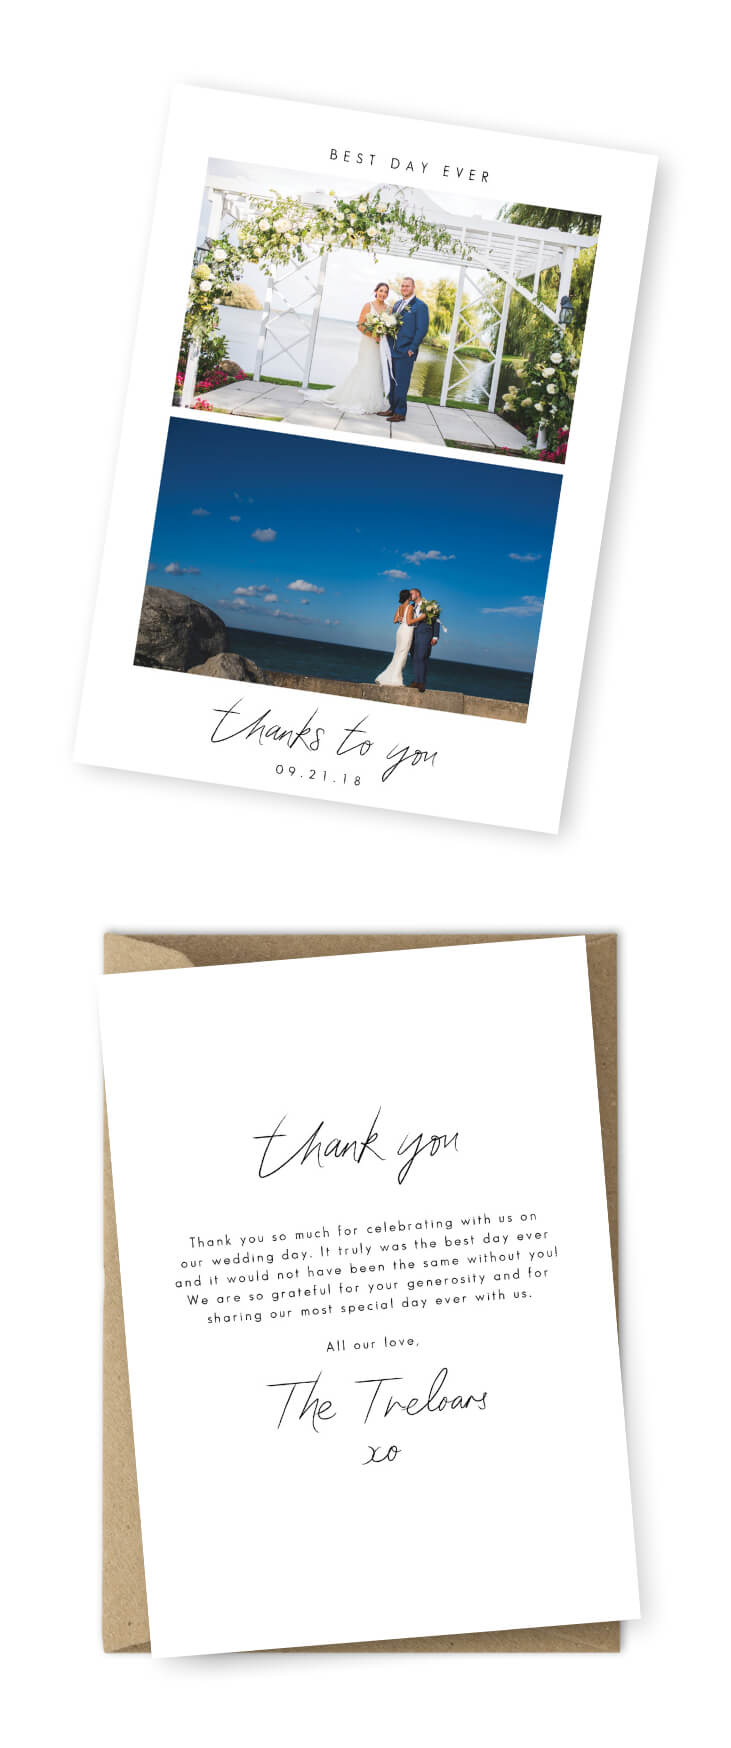 10 Wording Examples For Your Wedding Thank You Cards Pertaining To Template For Wedding Thank You Cards